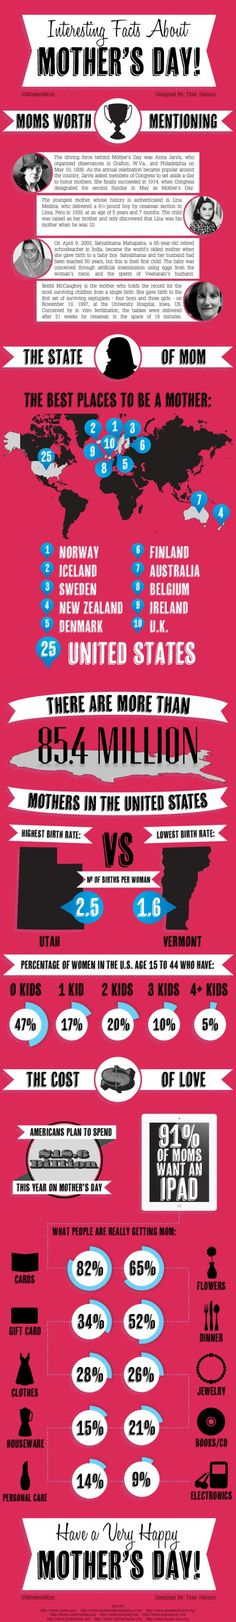 HAPPY MOTHER'S DAY! Some surprising totals!  Mother's Day in France today (May 26)...  It.s important a mum...